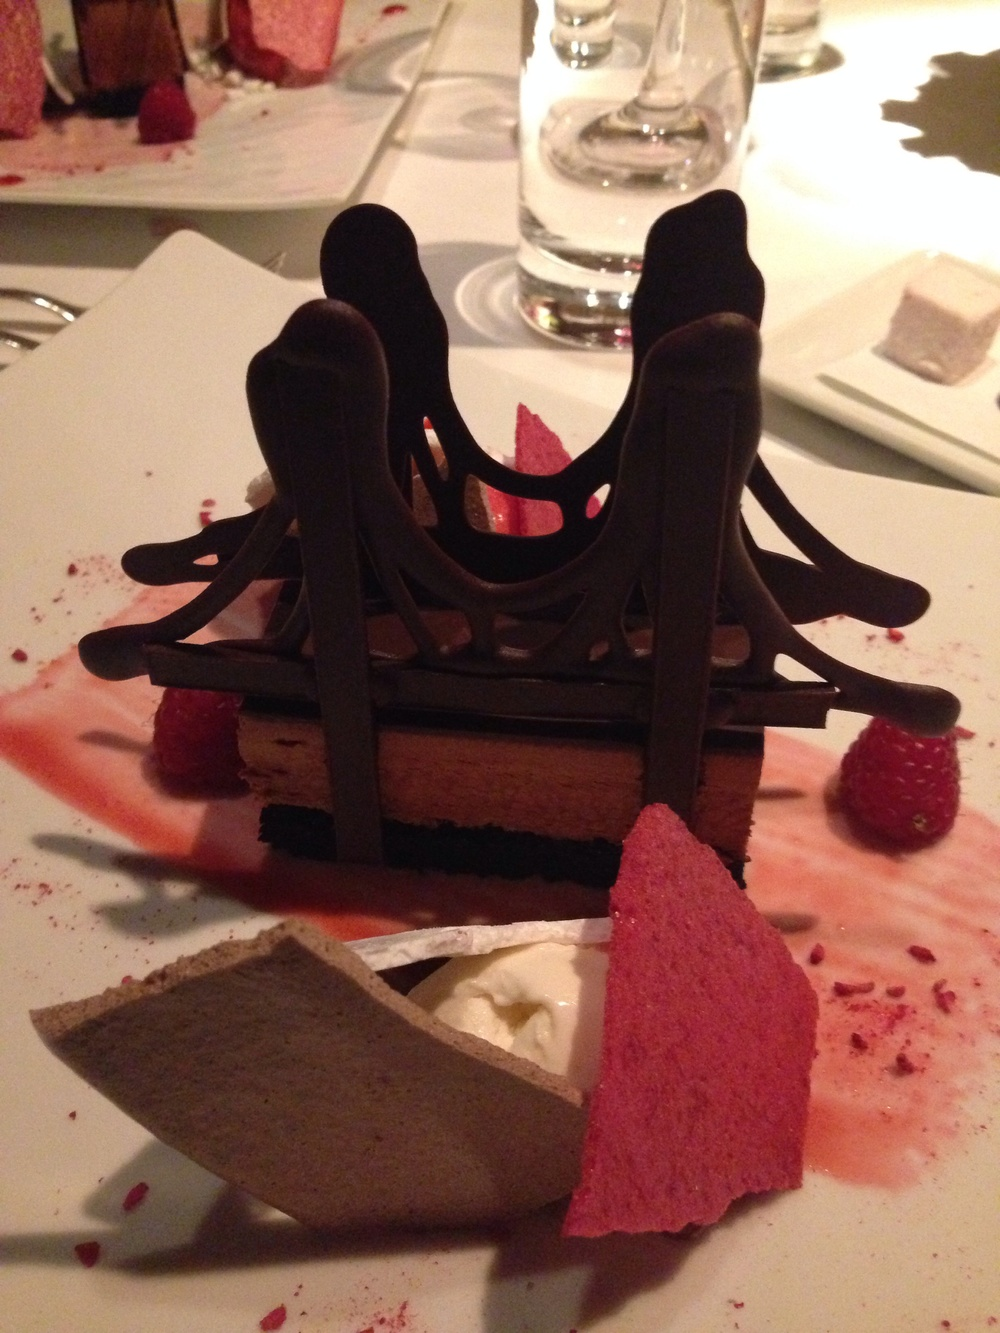 The Brooklyn Bridge dessert from The River Cafe.